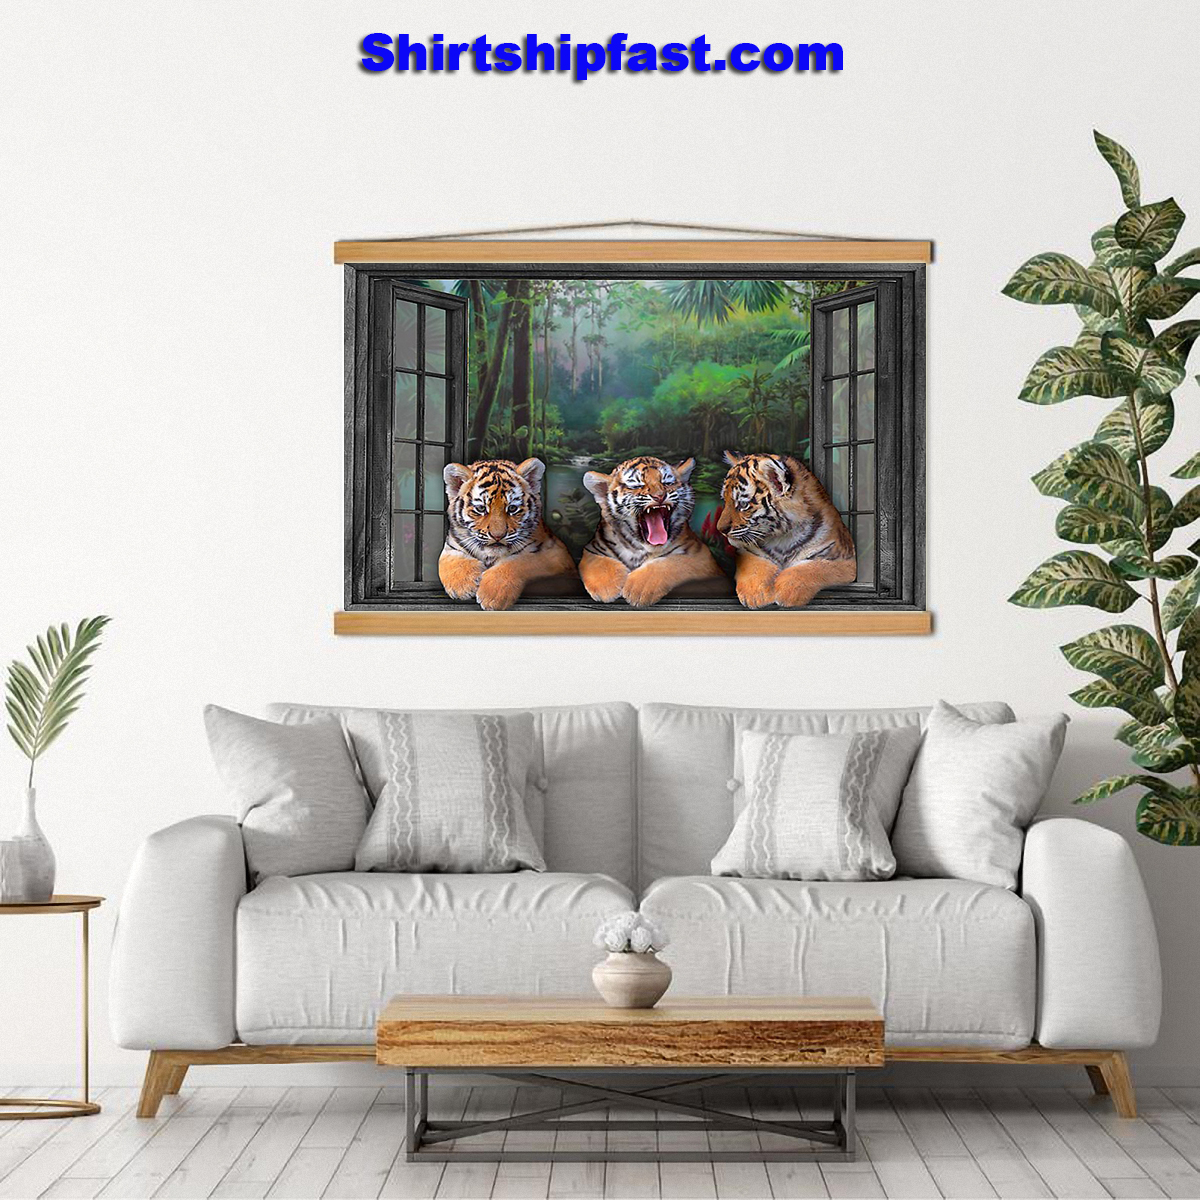 Three tigers by the window poster